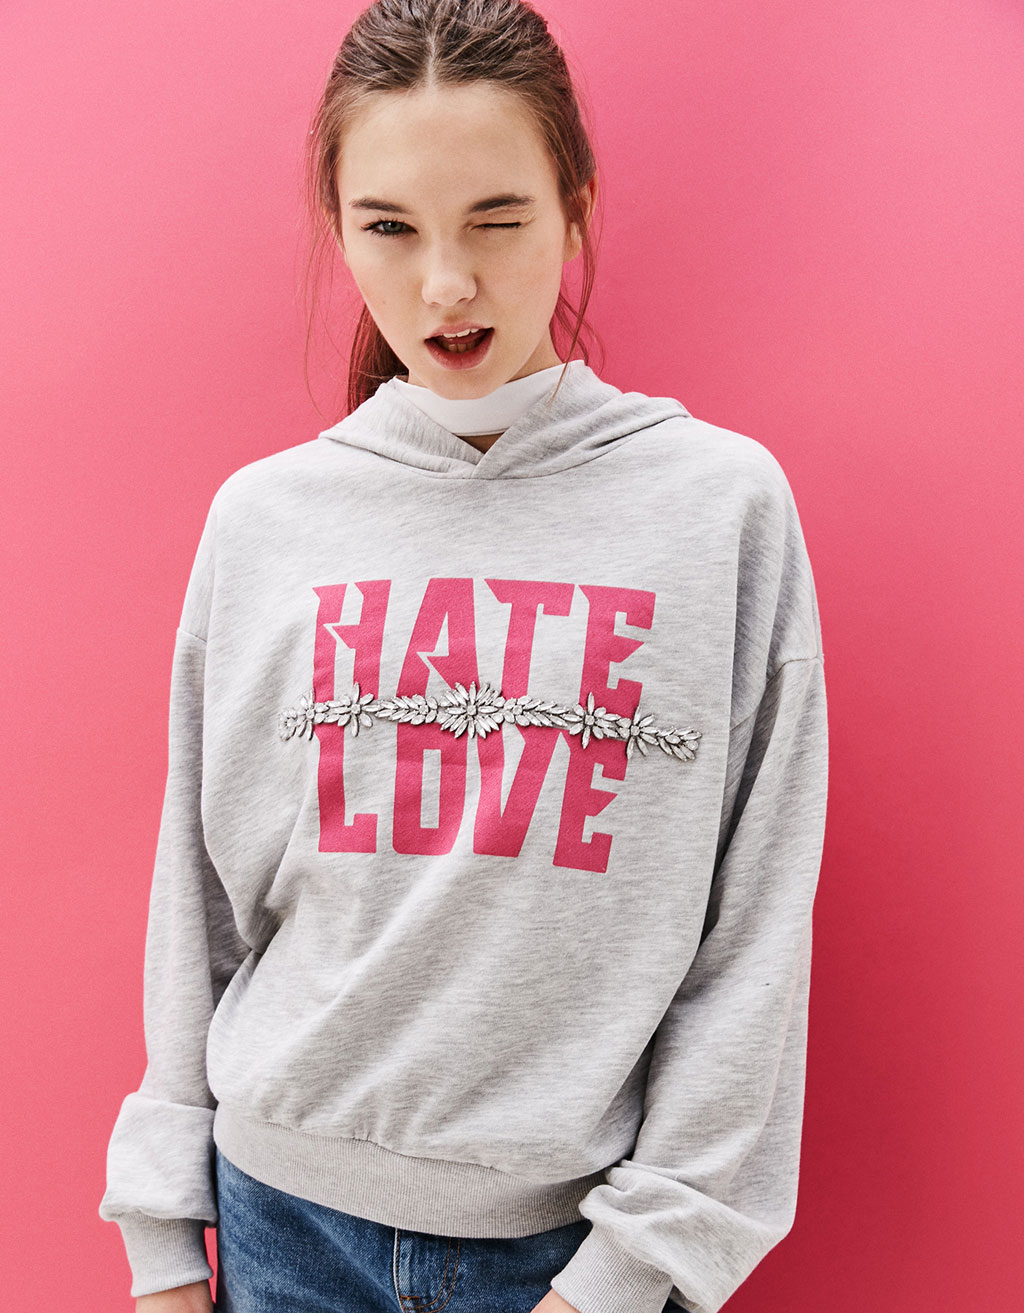 Hooded sweatshirt with gem and text